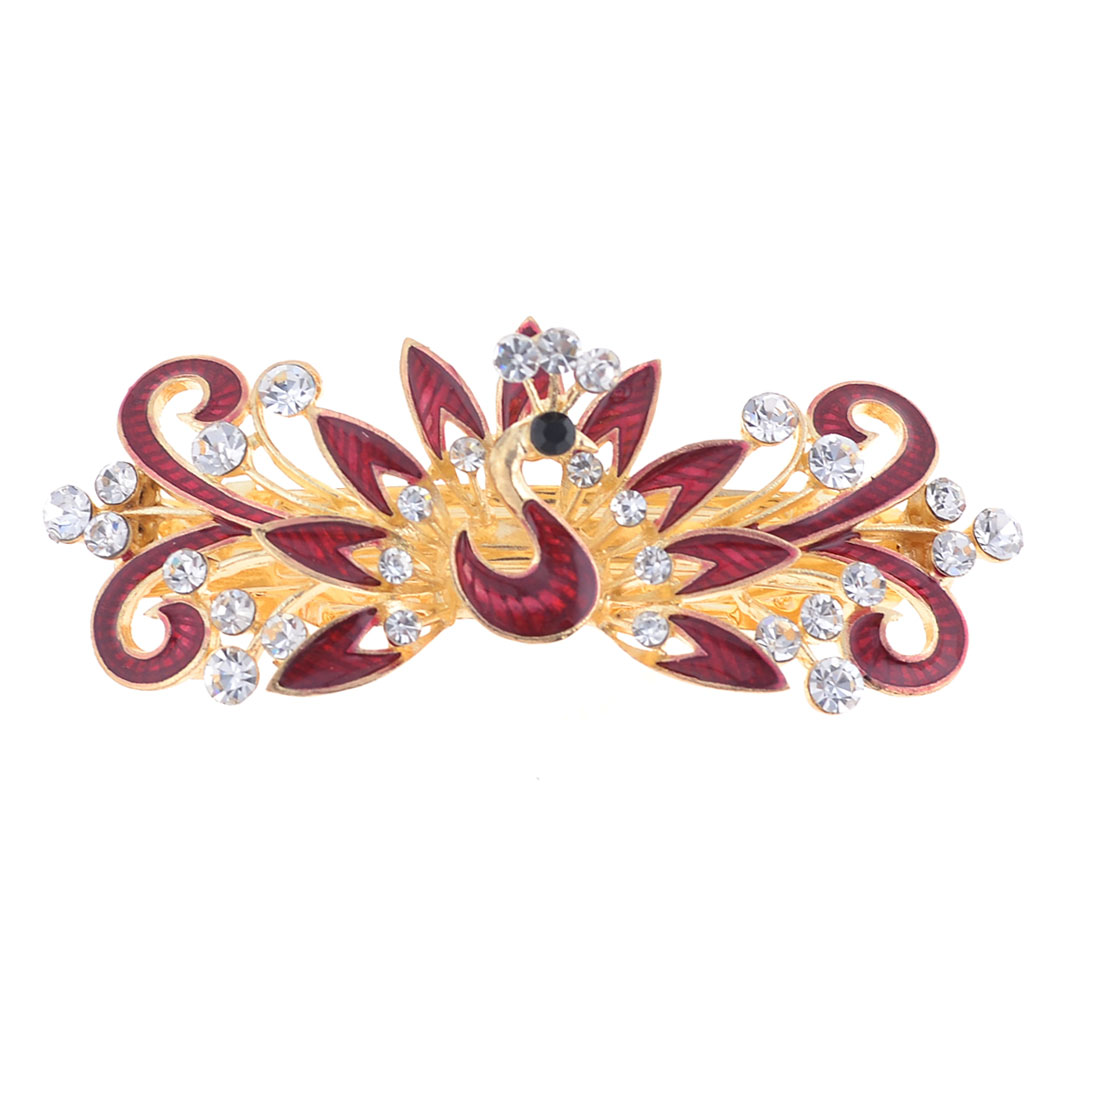 Ladies Glittery Rhinestone Accent Peacock Design Barrette Hairpin Burgundy